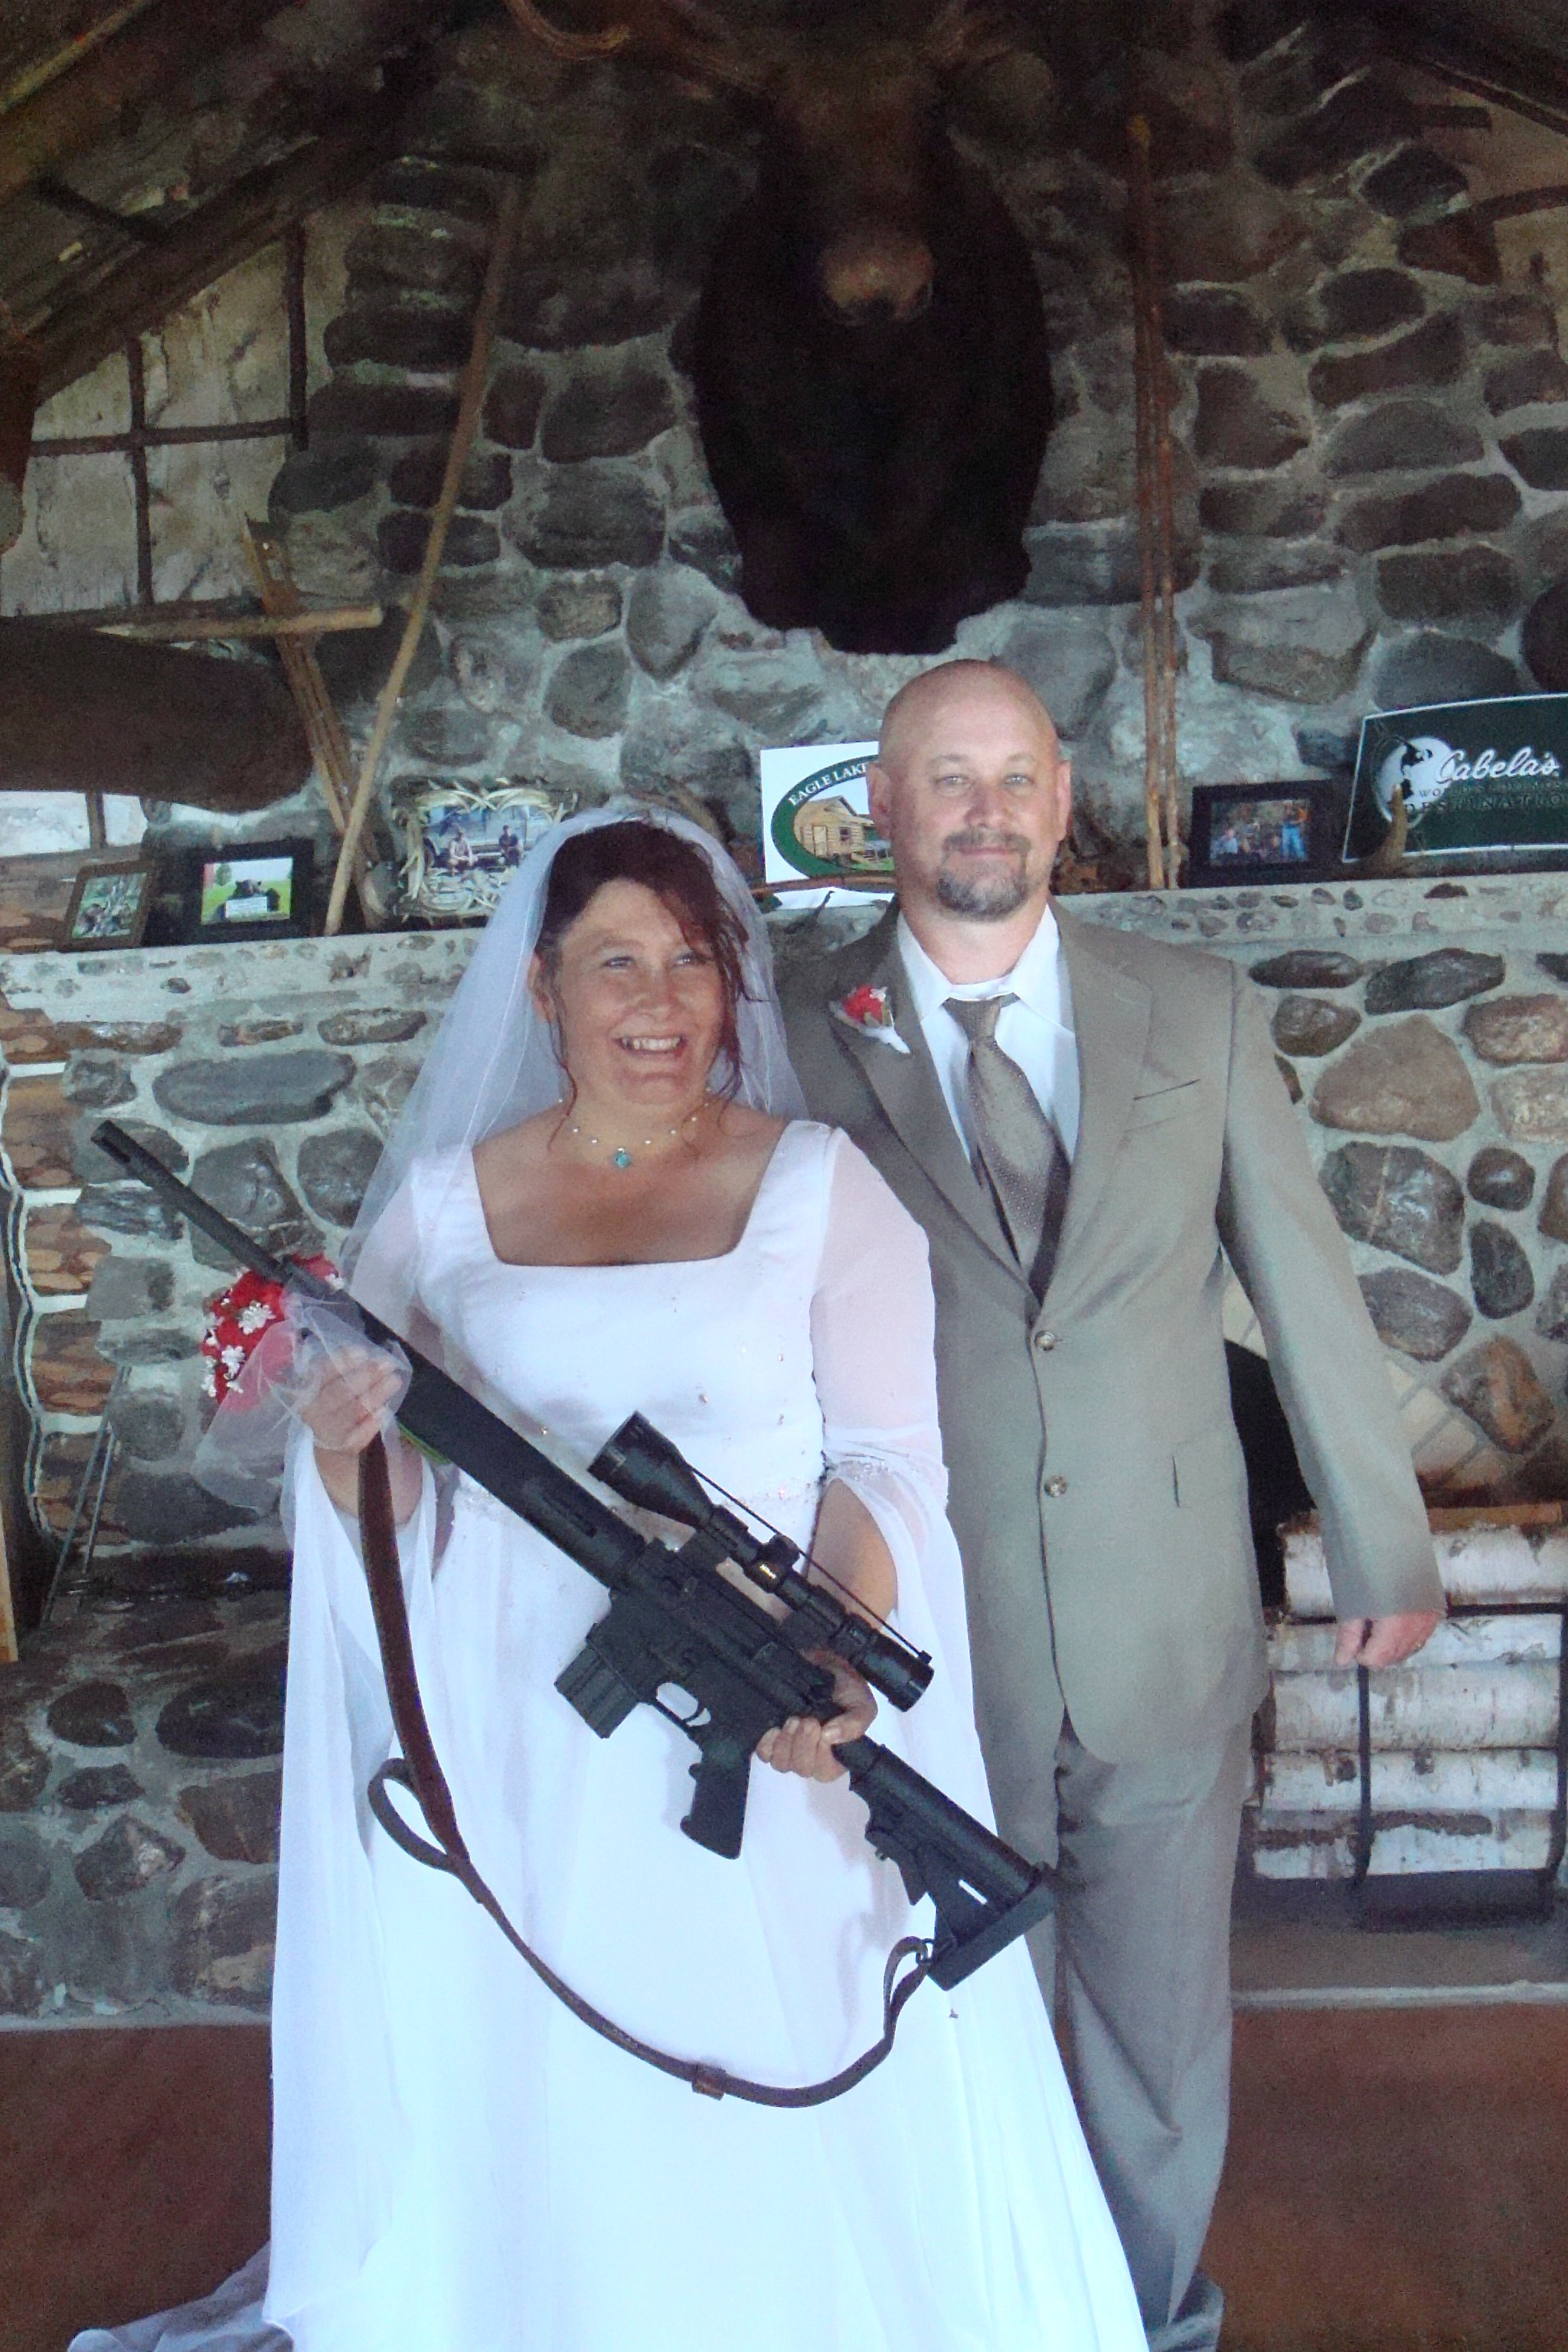 Firearm friendly weddings.